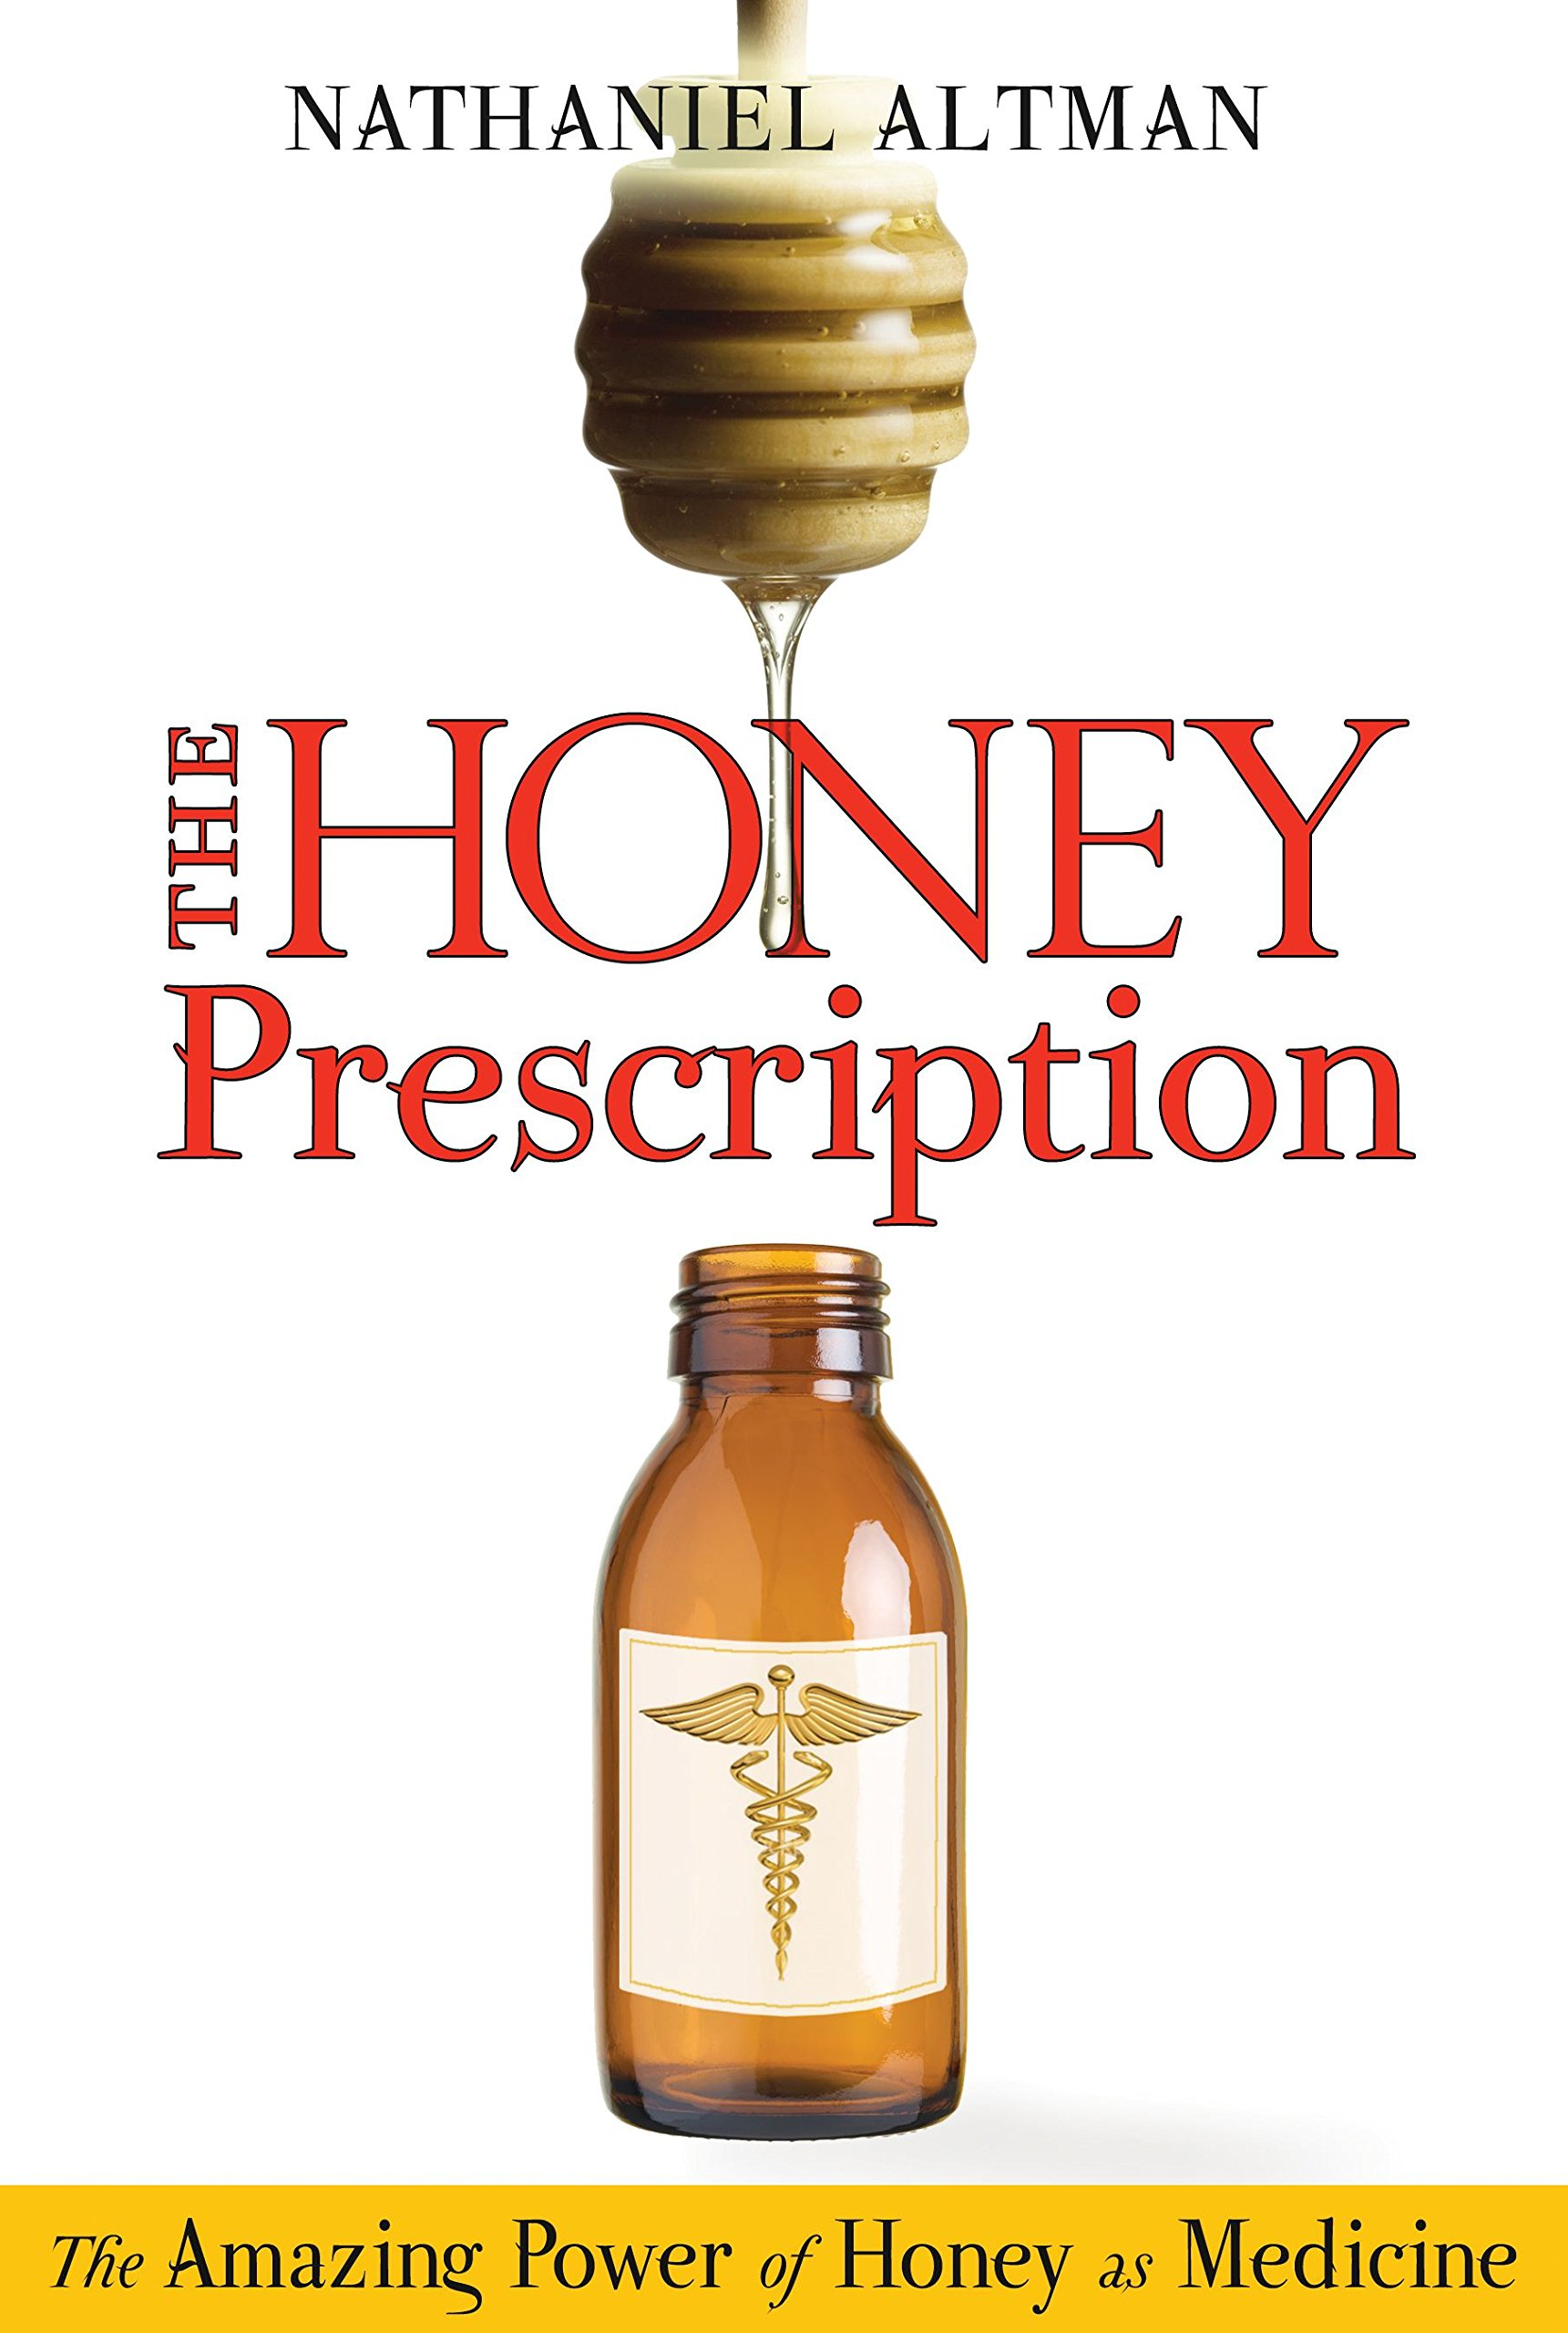 "the honey prescription: the amazing power of honey as medicine - By Nathaniel AltmanExplores the latest scientific research on the healing powers of honey. The Honey Prescription:• Explains the physiological reasons why honey is so effective and includes recipes for honey-based remedies for many different ailments• Discusses the sacred role of bees from ancient Egypt to modern times and the problem of Colony Collapse Disorder (with methods for protecting hives)• Reveals the healing power of honey for many common problems–from burns, ulcers, and conjunctivitis to tooth decay, diabetes, and cystic fibrosis–and honey's ability to kill superbugs like E. coliThe use of honey as a healing agent is nothing new. It was an ingredient in medicinal compounds and cures made by Egyptian physicians 5,000 years ago, and its medical use has been found in other ancient practices from traditional Chinese medicine and Indian Ayurveda to Mayan shamanism. In the past ten years there has been an explosion in scientific research on honey as medicine at universities, research centers, and medical clinics around the world.Presenting the very latest scientific and medical evidence of the healing properties of honey–including that from the Honey Research Unit at the University of Waikato in New Zealand–Nathaniel Altman explores the broad spectrum of medicinal uses of honey and how these remedies can be used safely at home as well as by licensed health practitioners. He includes an extensive selection of honey-based recipes that can be used to treat common health problems–from burns, conjuctivitis, and ulcers to tooth decay, diabetes, and cystic fibrosis. He explains the physiological reasons why honey is so effective in treating antibiotic-resistant diseases with no side effects and honey's ability to kill ""superbugs"" like E. coli and MRSA (Methicillin-resistant Staphylococcus aureus). Drawing on centuries of material from historical and folk medicine sources, he also examines the sacred role of bees from ancient Egypt onward and the modern problem of Colony Collapse Disorder, including methods for protecting our precious hives."